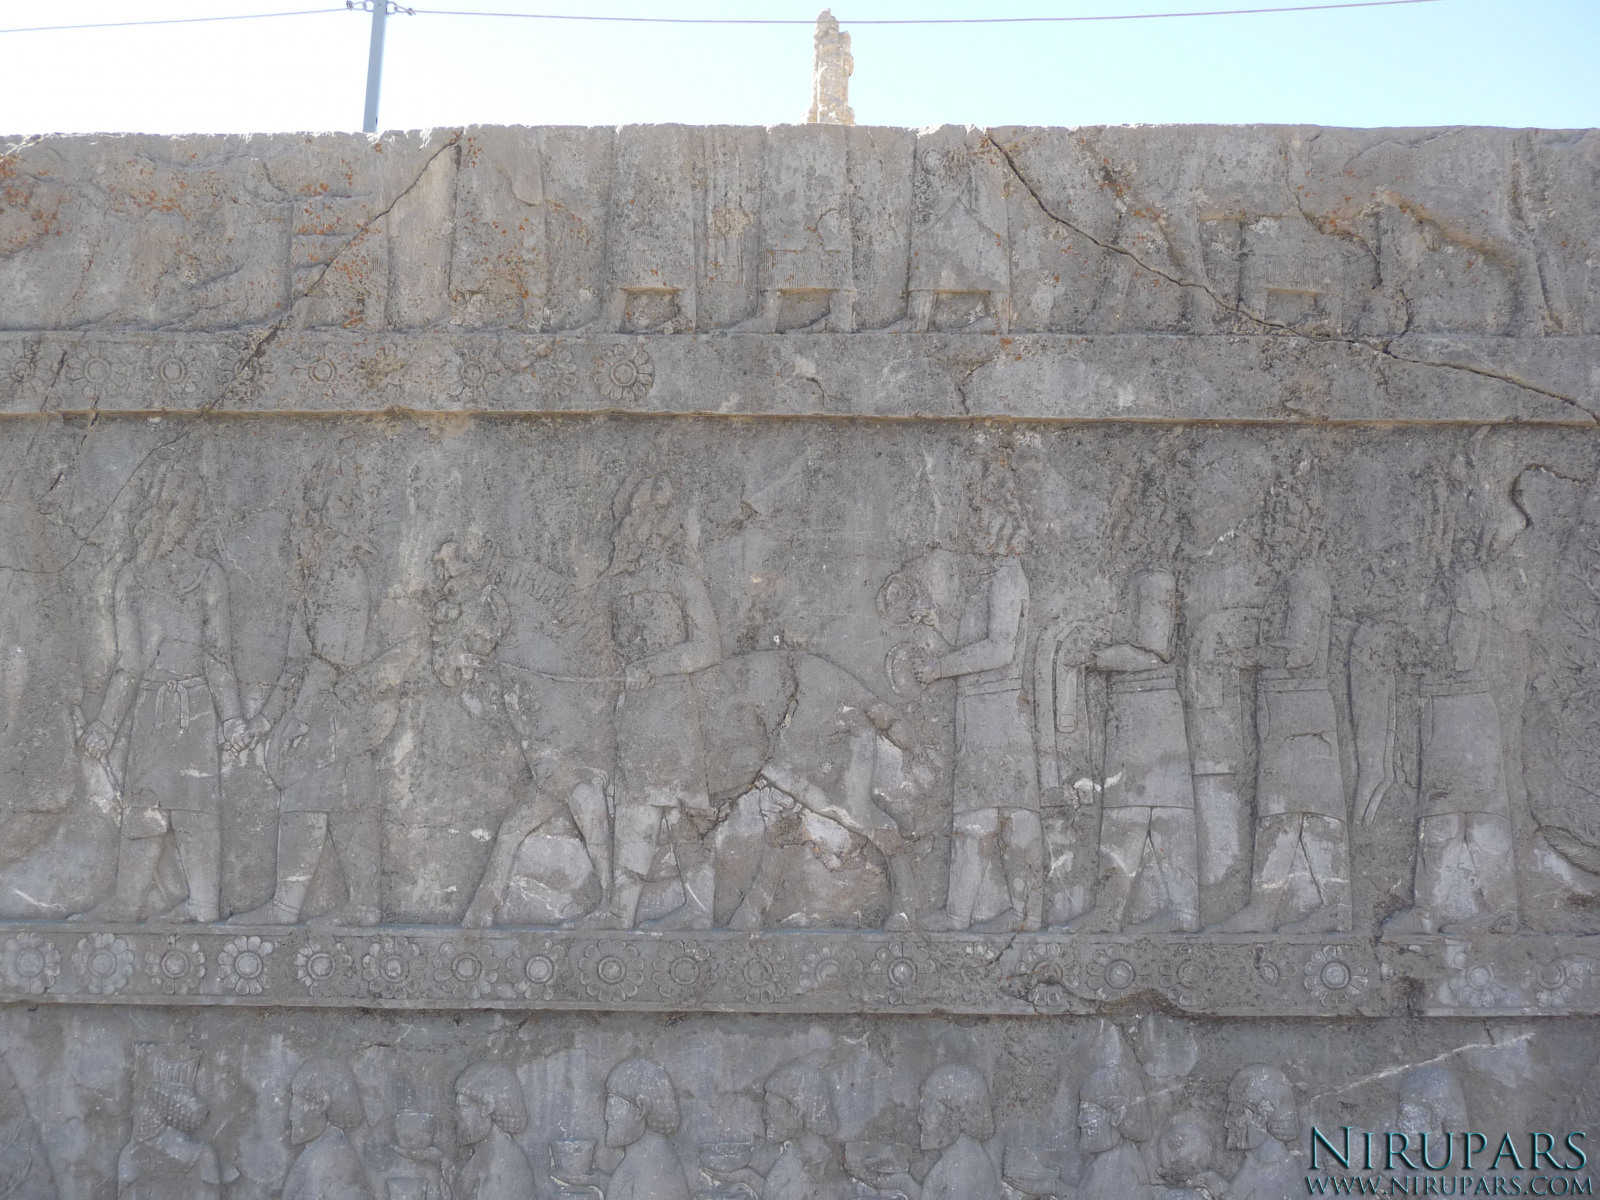 Persepolis - Apadana - North Portico - Delegation Scythia